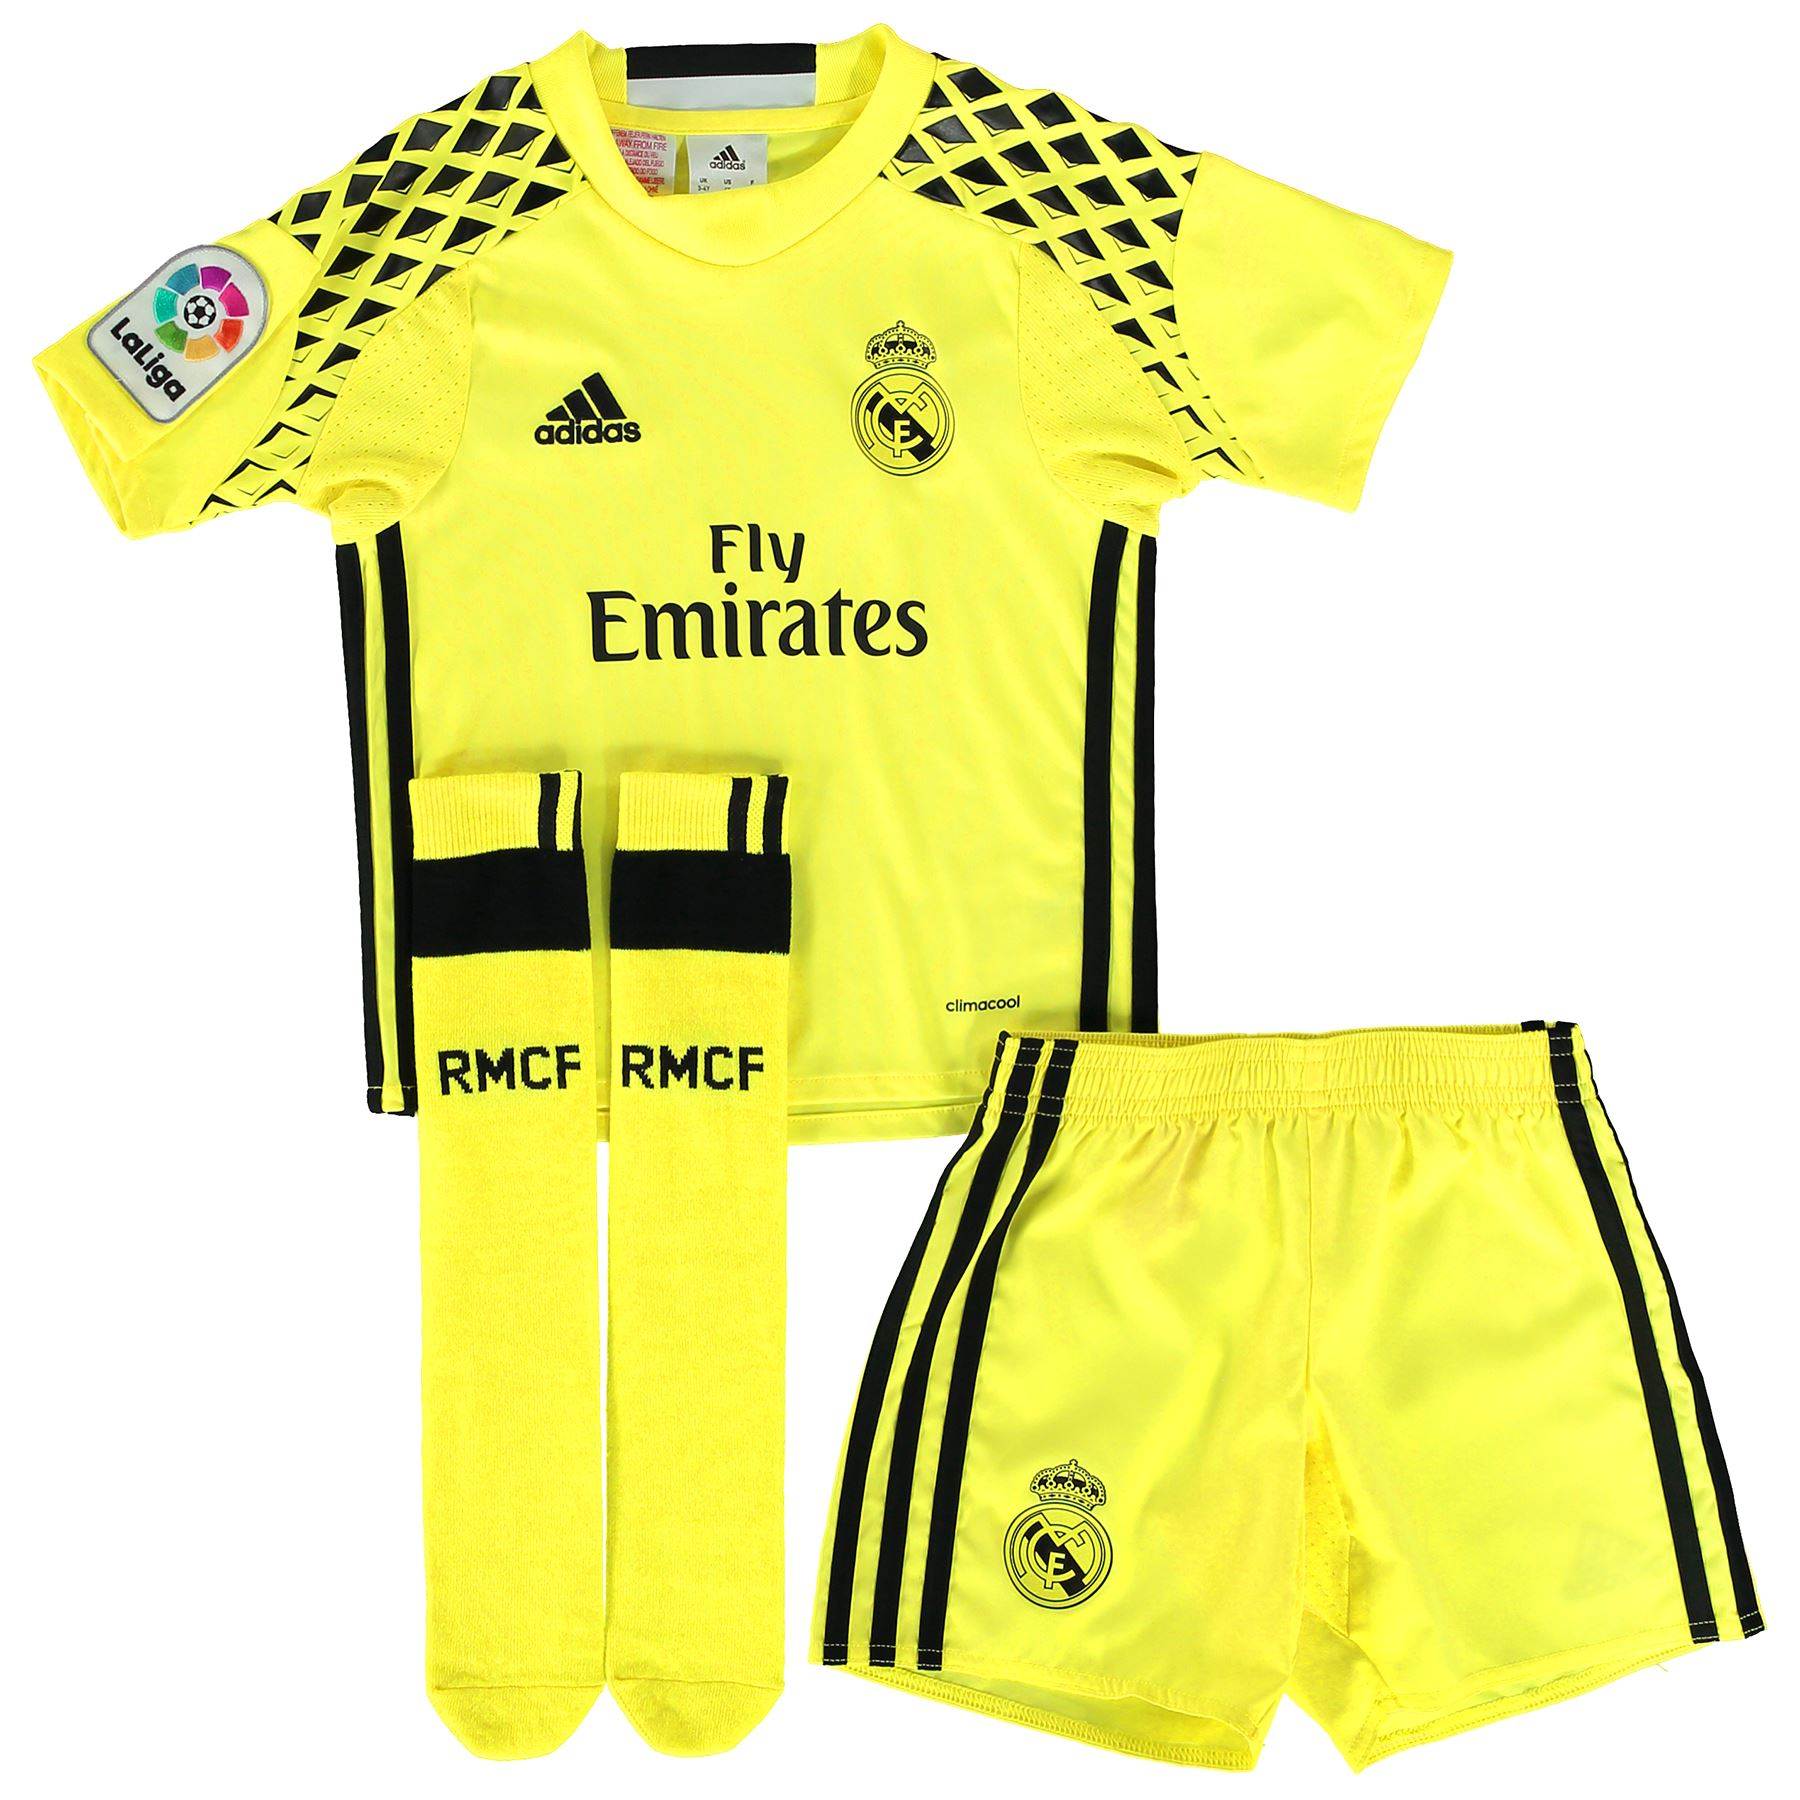 Find great deals on eBay for Kids Football Kits in Sportswear for Boys, Ages Years. Shop with confidence.